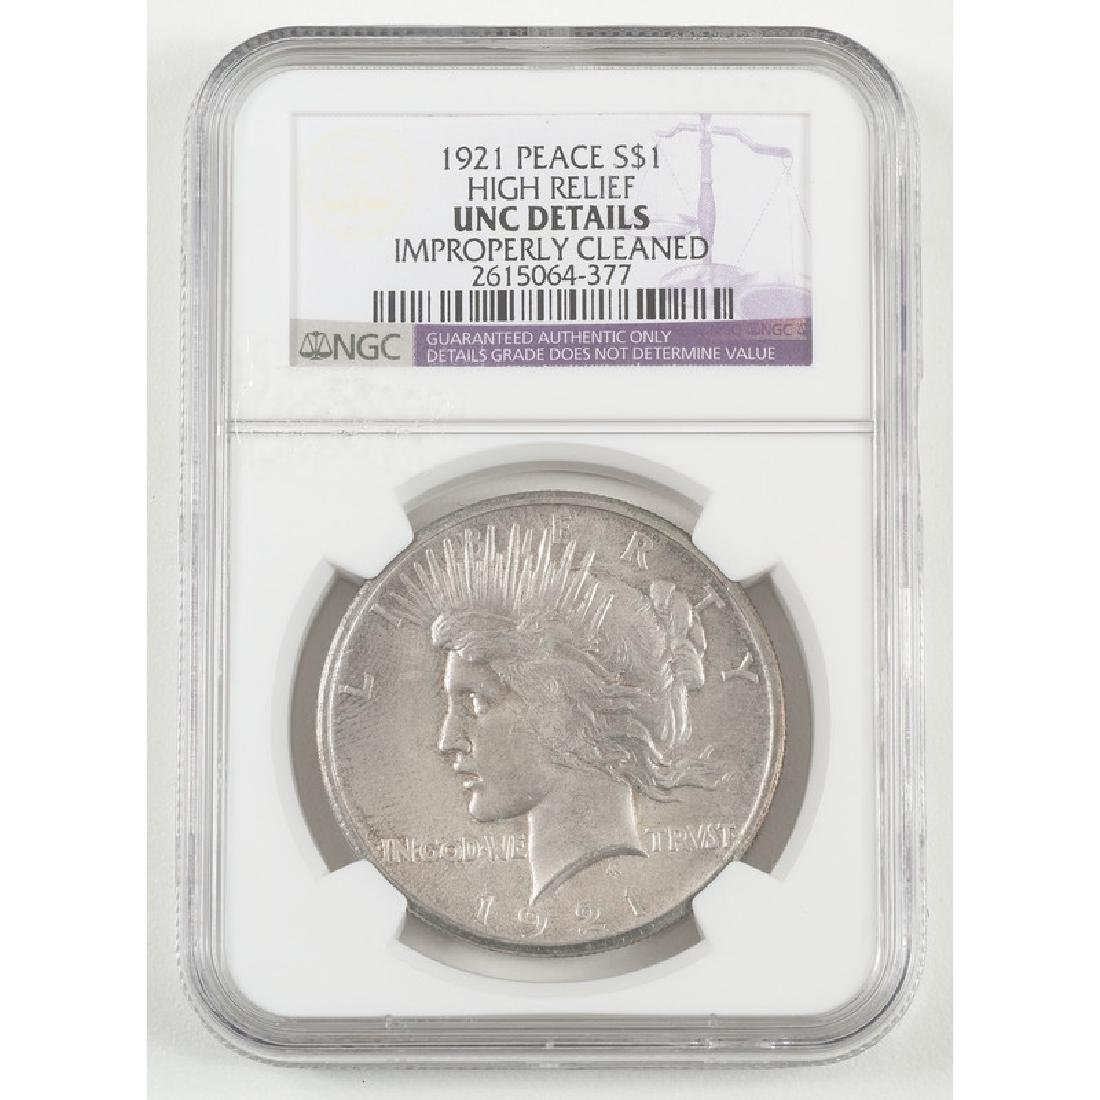 United States Peace Silver Dollar 1921, NGC UNC Details